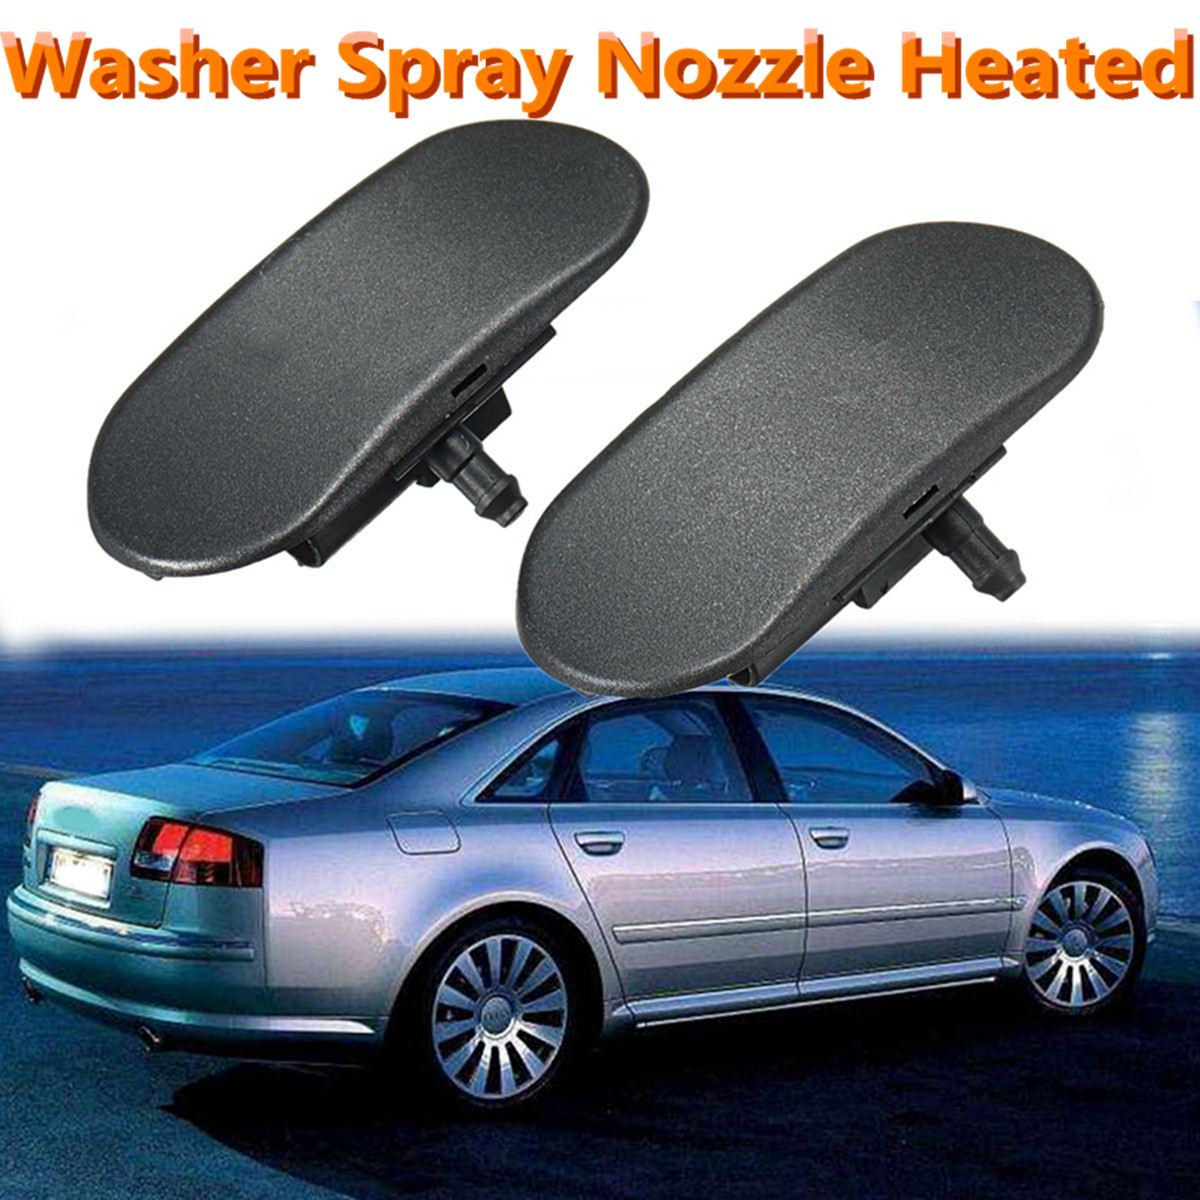 2Pcs Car Front Windshield Washer Spray Nozzle Heated For Audi A6 S6 Quattro  A4 A3 A8 4F0955987A 4F0955988A-in Windscreen Wipers from Automobiles ...